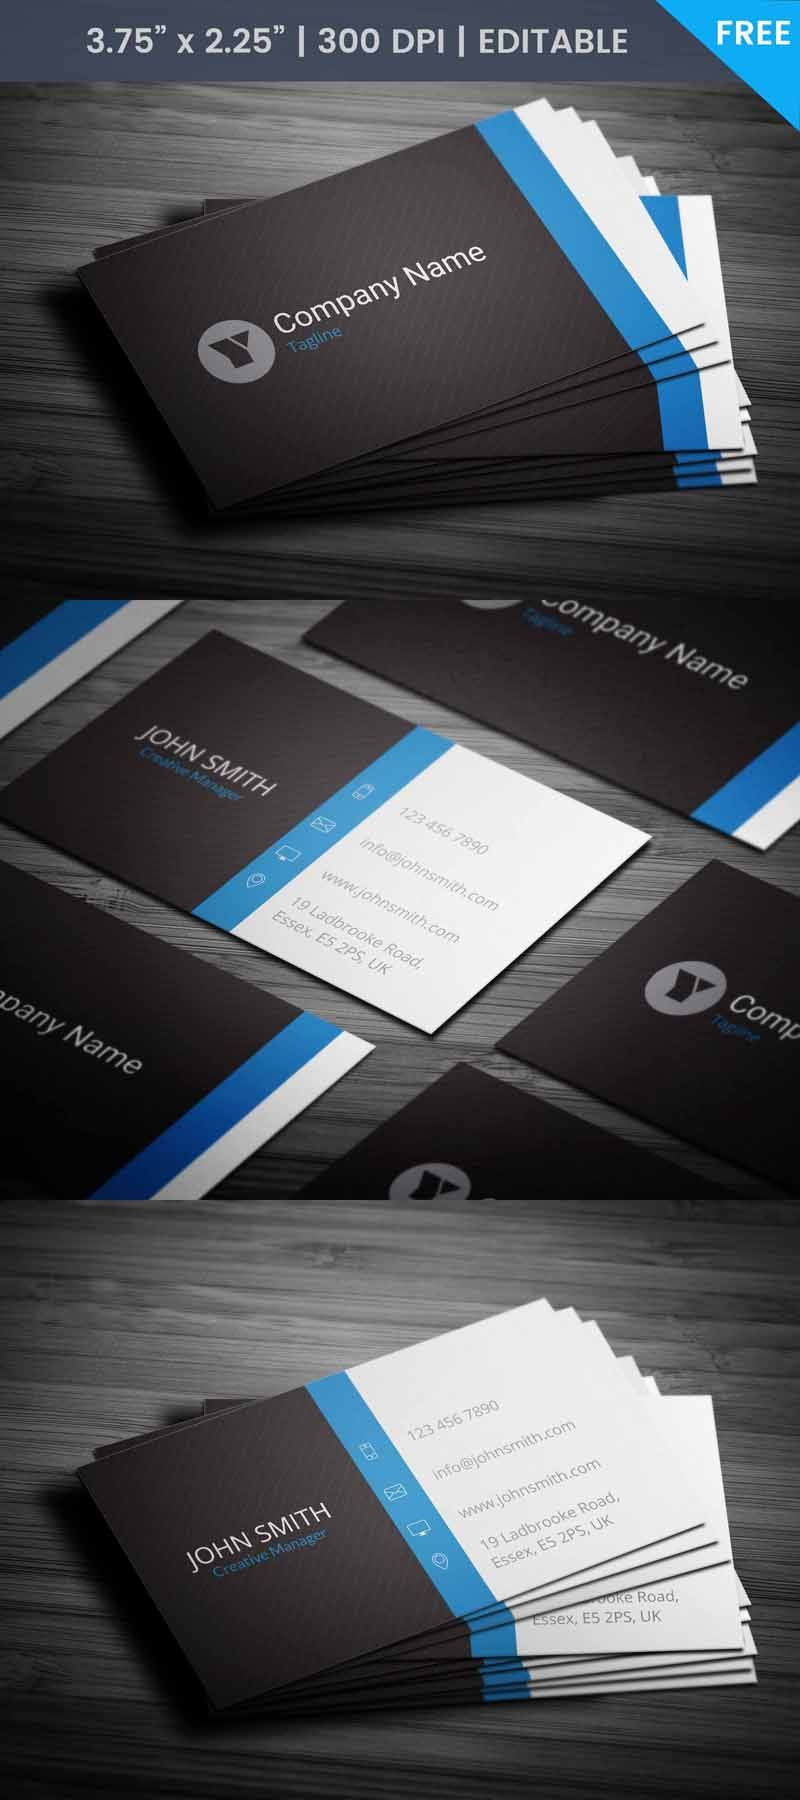 Free Cfo Business Card Template Businesscard Design Free Business Card Templates Printing Business Cards Square Business Cards